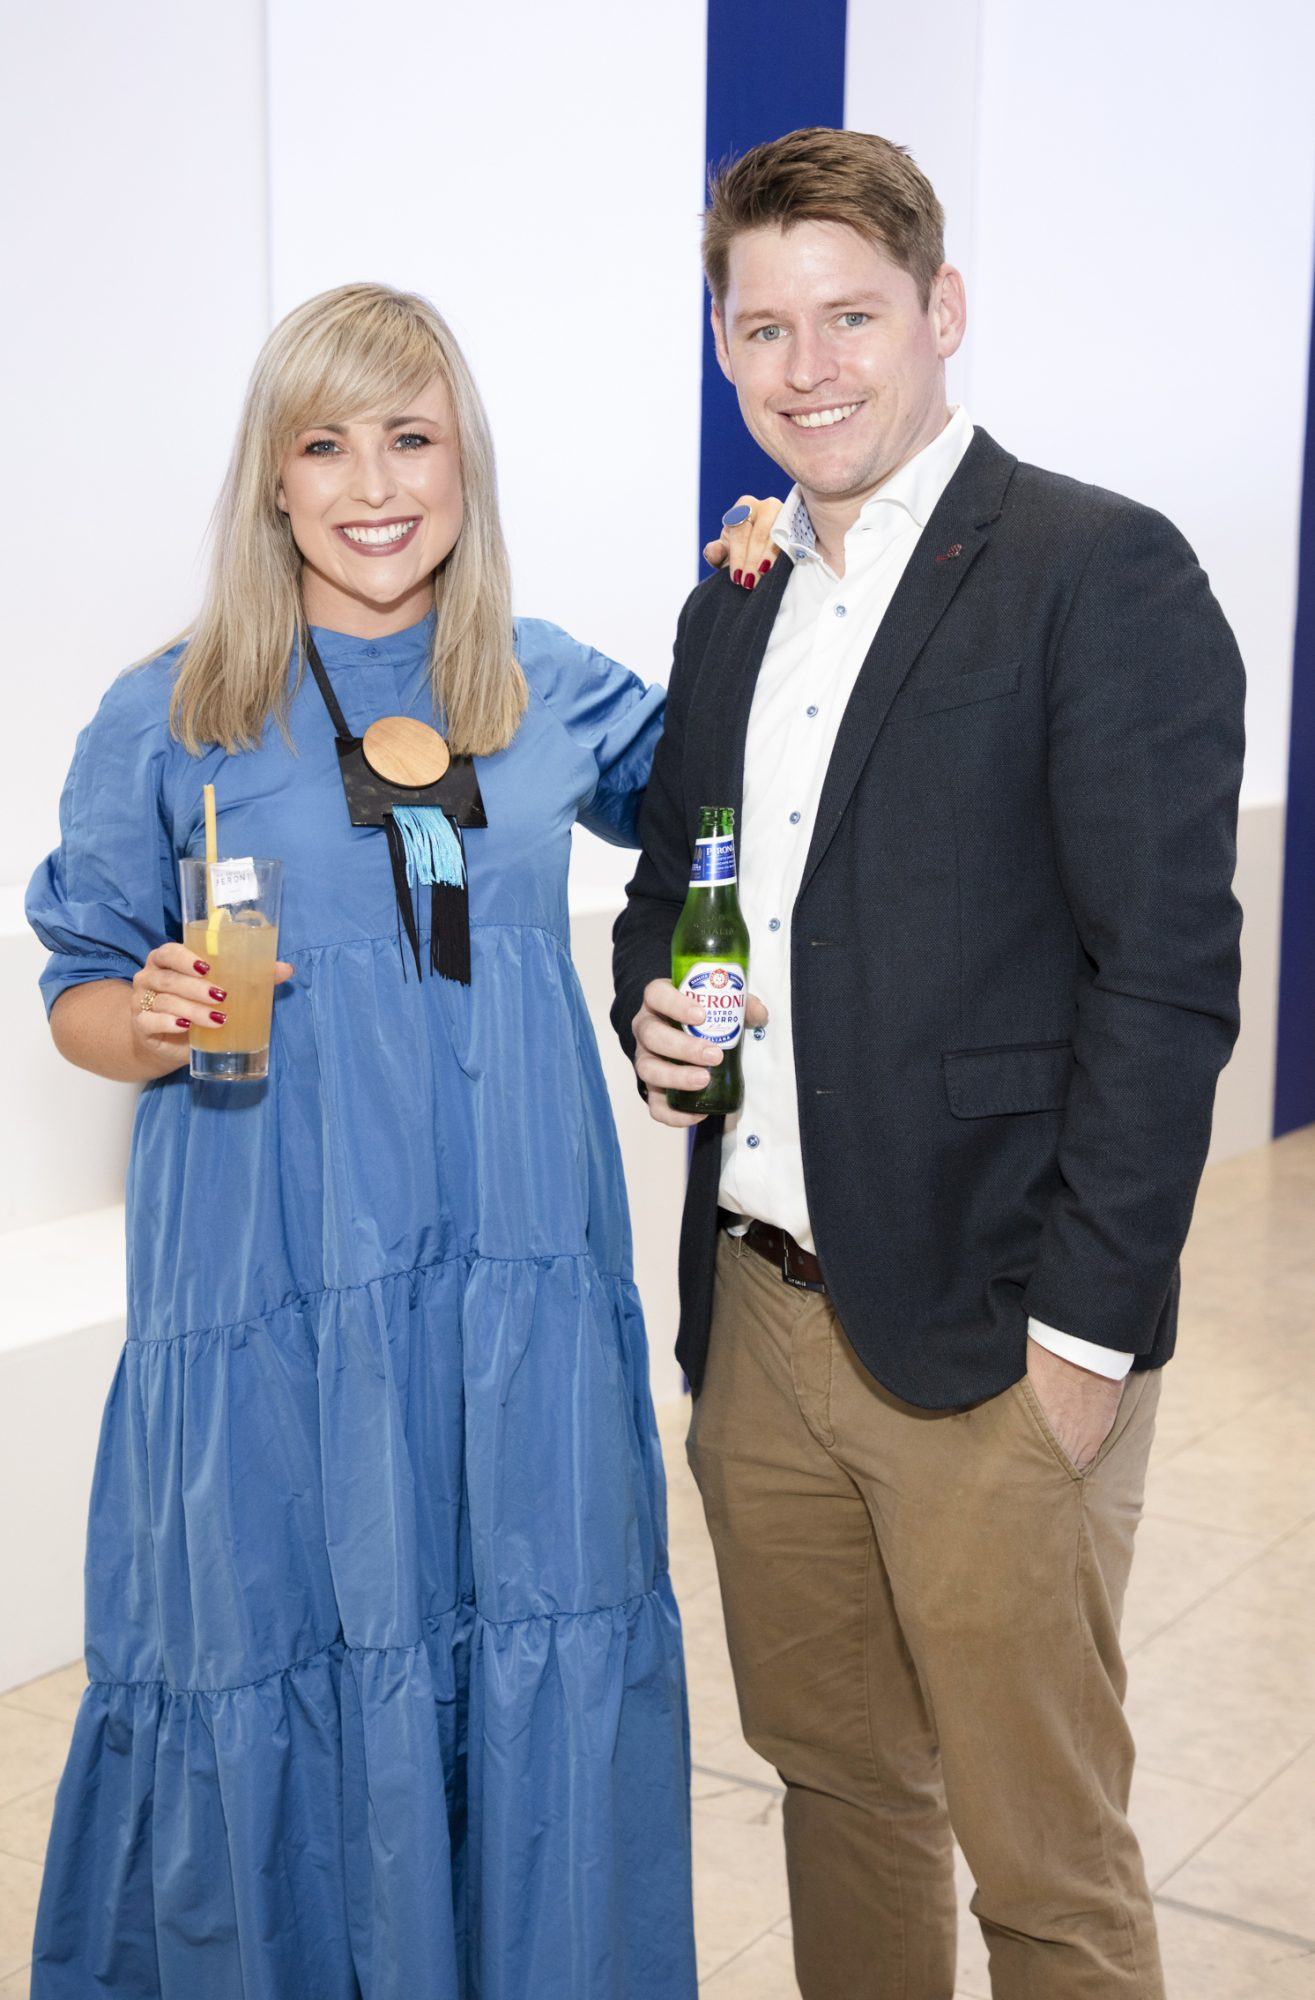 Roisin Lafferty & Niall Daly Lennon pictured at the launch of The House of Peroni, which is open at the RHA in Dublin until Sunday, 1st September 2019. This year's residency sees the RHA transformed into a stylish Peroni inspired experience, filled with food, drink and design. www.thehouseofperoni.com Photo: Anthony Woods.